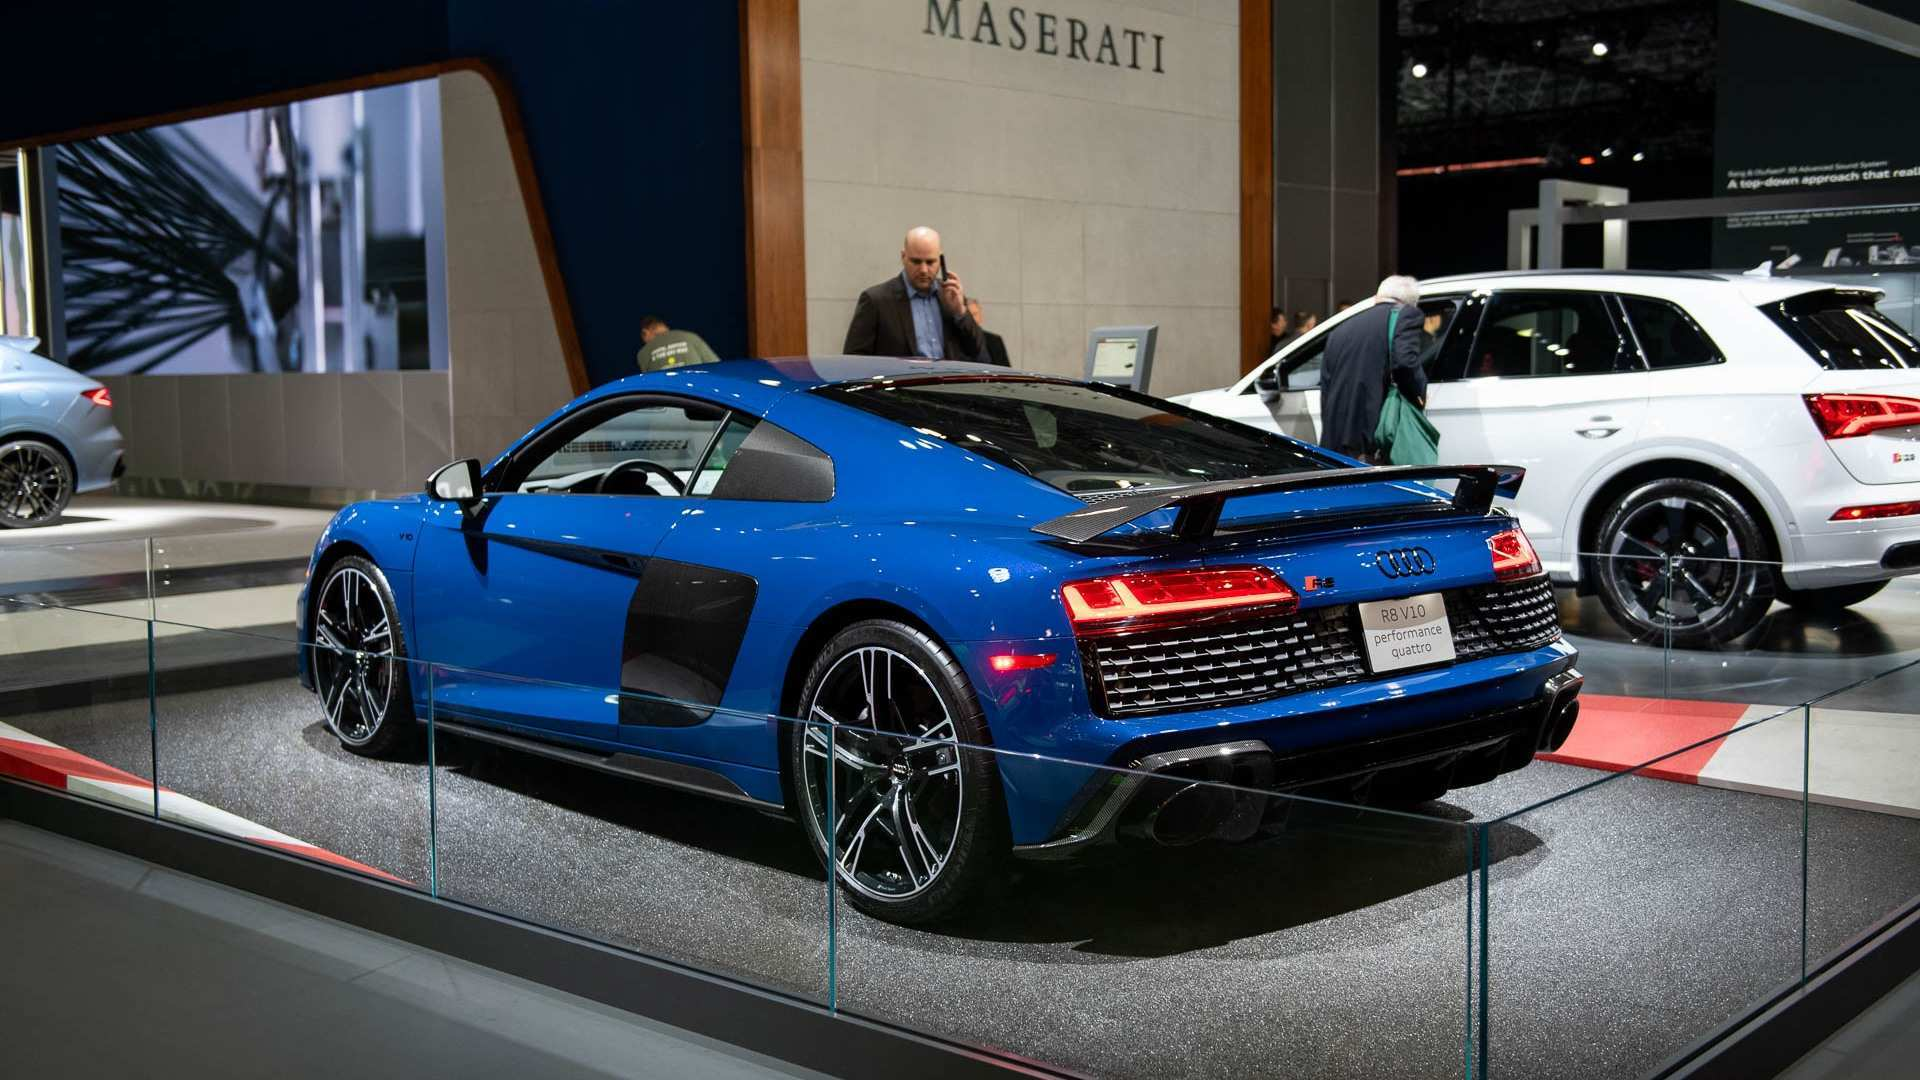 62 Gallery of Pictures Of 2020 Audi R8 Style with Pictures Of 2020 Audi R8